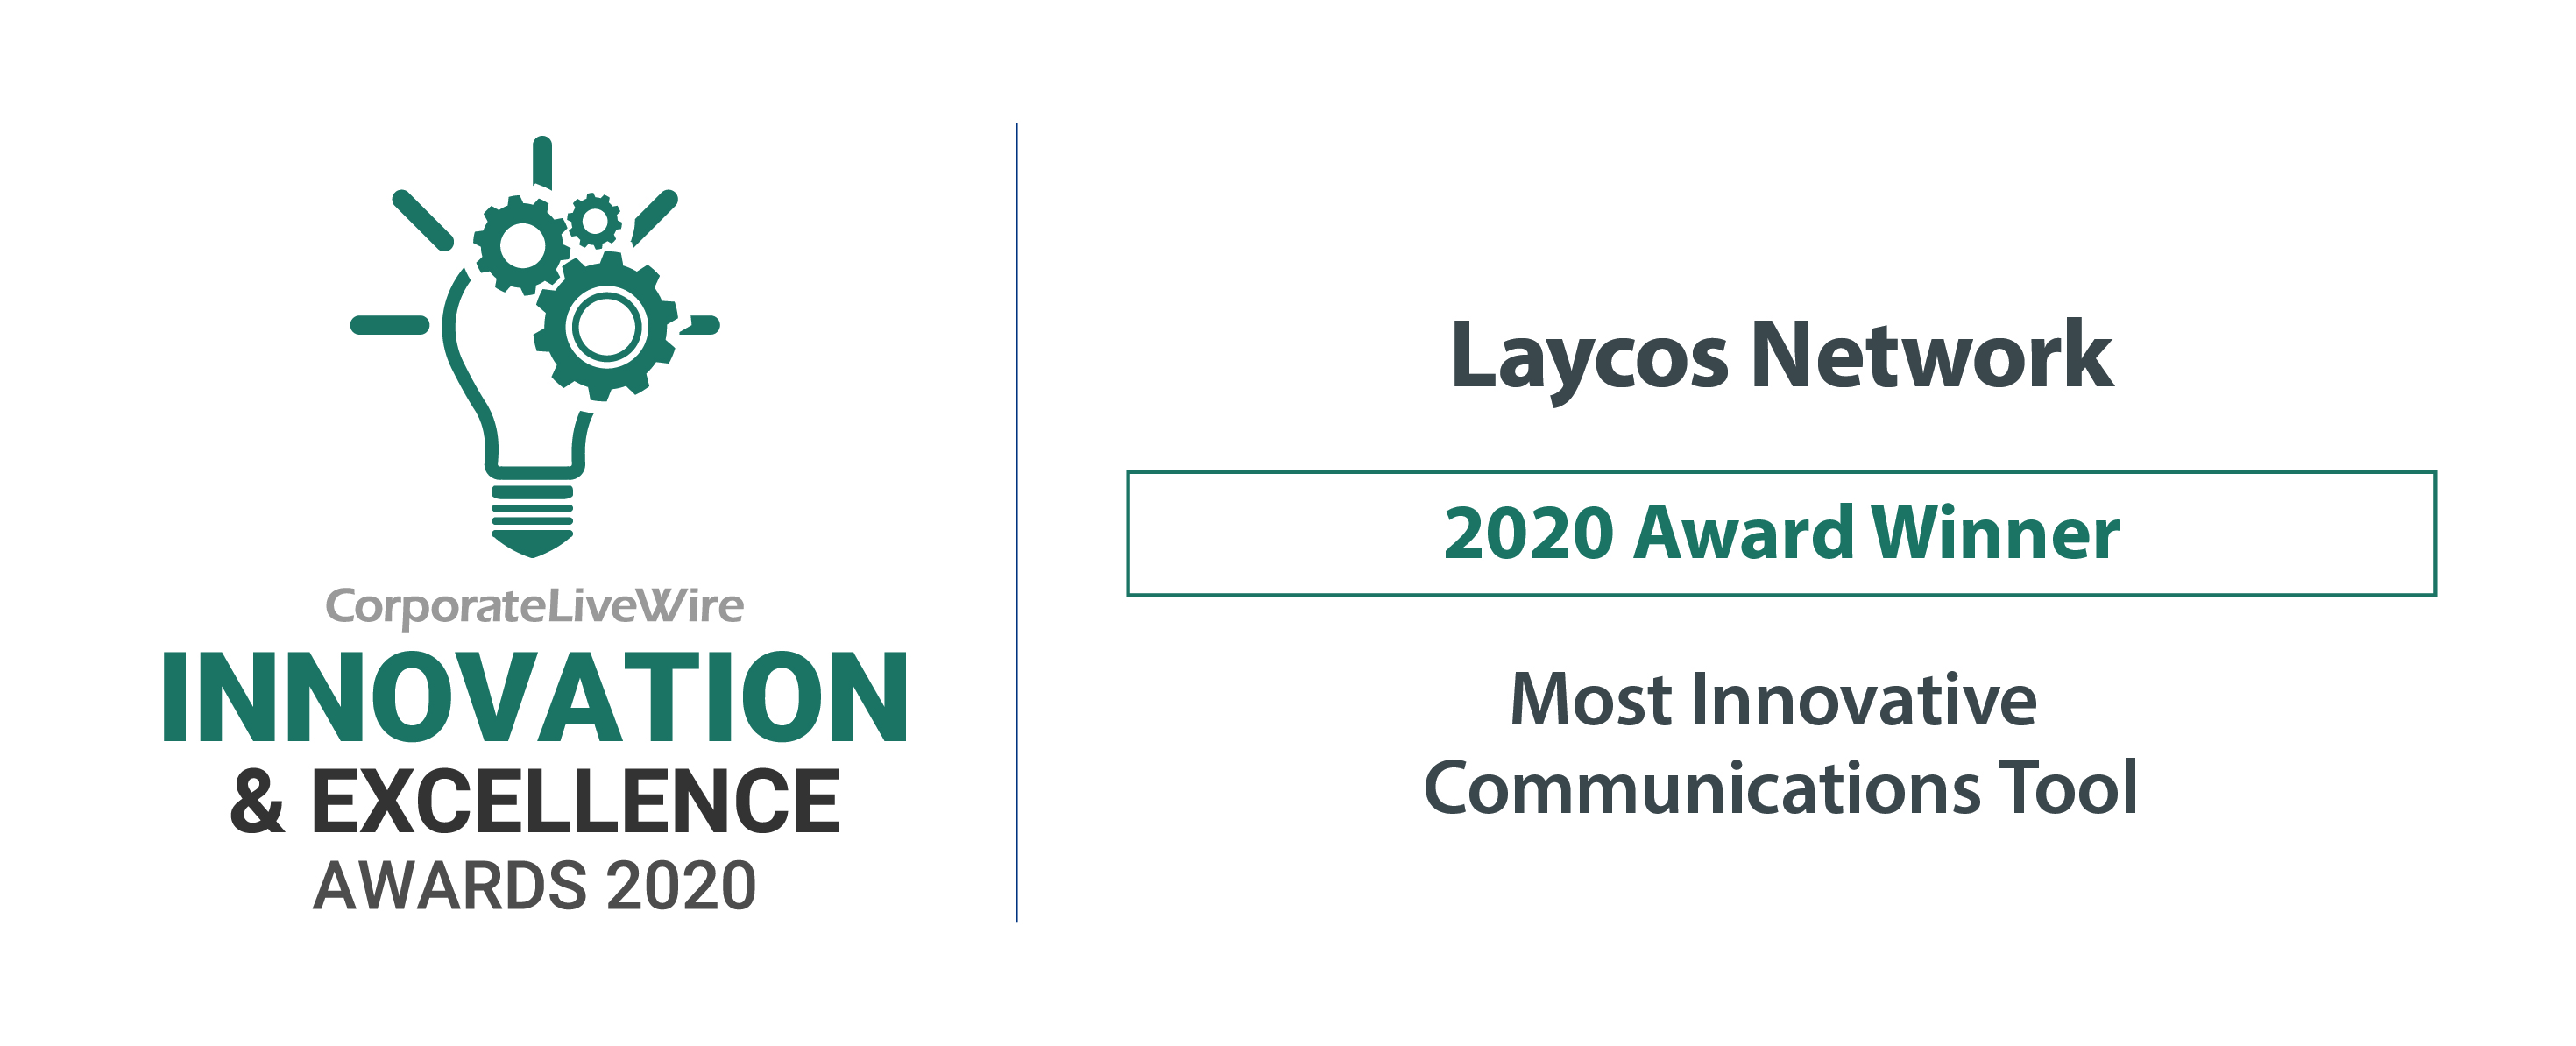 Most-Innovative-Communications-Tool-2020---Laycos